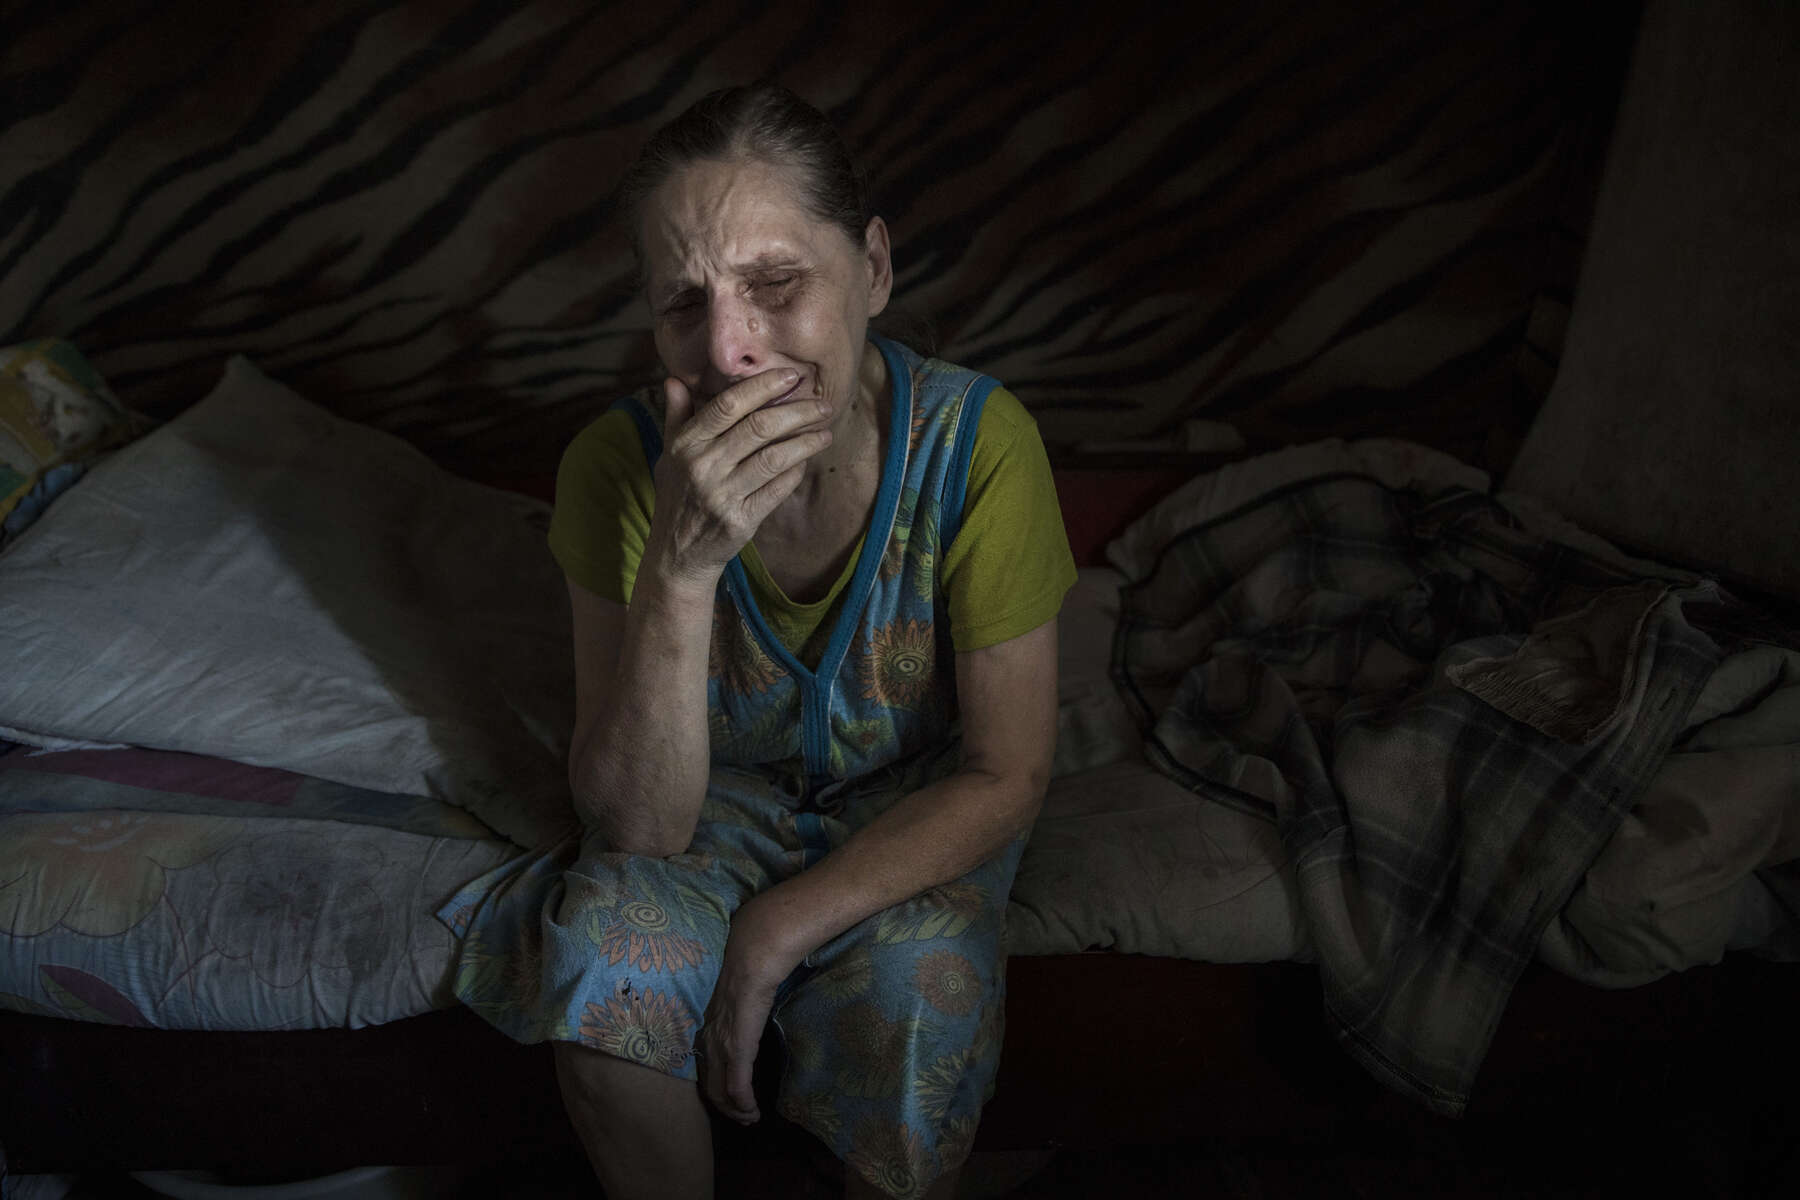 Avdiivika: Elena Parshyna,age 66, is blind and lives alone,feeling depressed and lonely after her husband had a heart attack in April. She says that she cries often now. Her son also died late in 2017 from the same fate. To make matter worse, Both were buried in a small cemetery that is mined and now too close to the military positions so she never can go visit the graves. The home was shelled last year, still damaged but Elena refuses to leave. Her remaining family - daughter and a sister all live on the other side of the contact line in Makeyevka city controlled by pro-Russian separatists.